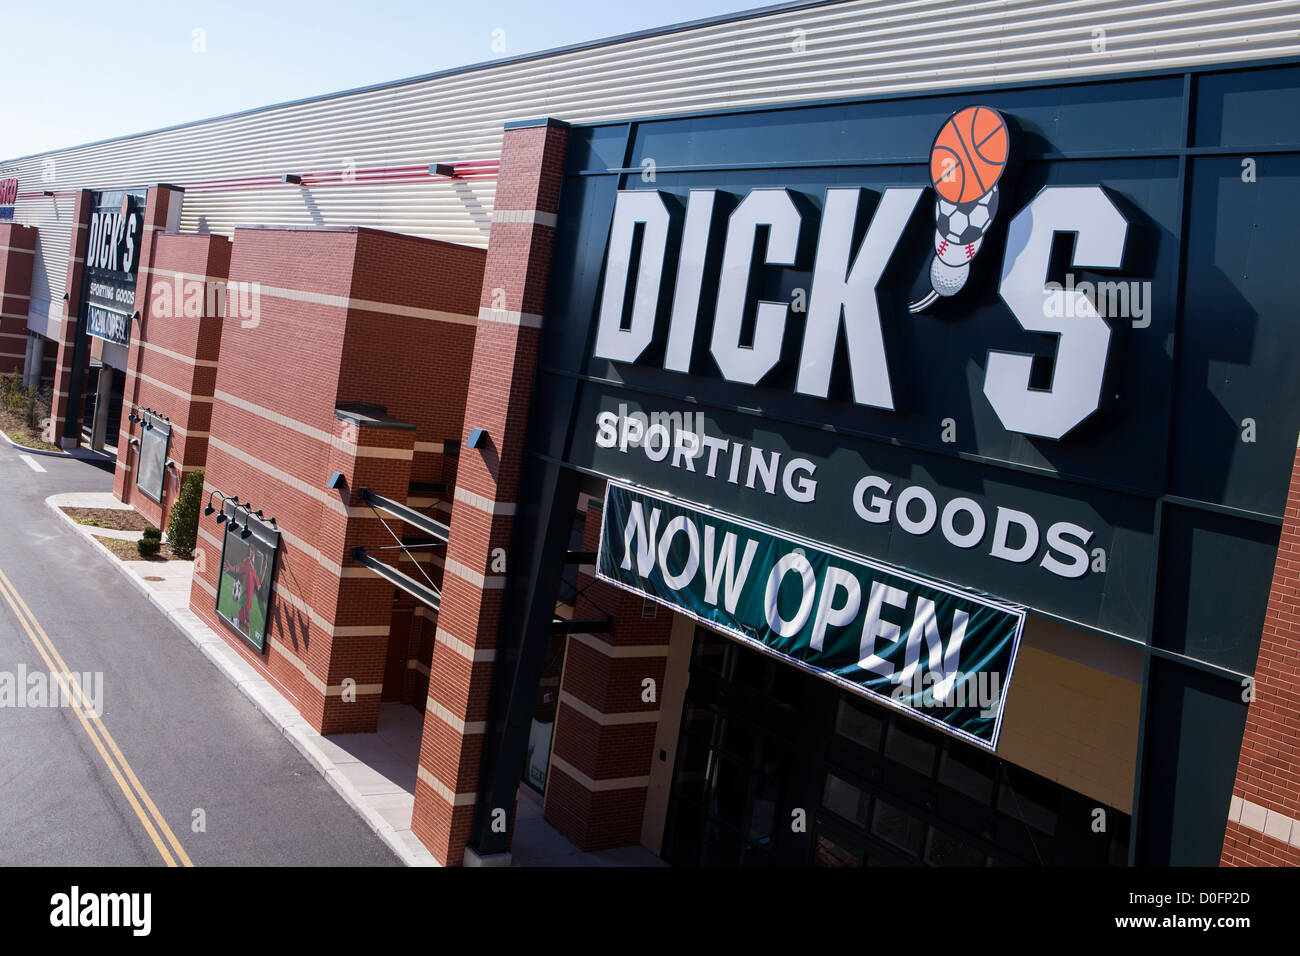 A Dick's Sporting Goods retail store.  - Stock Image